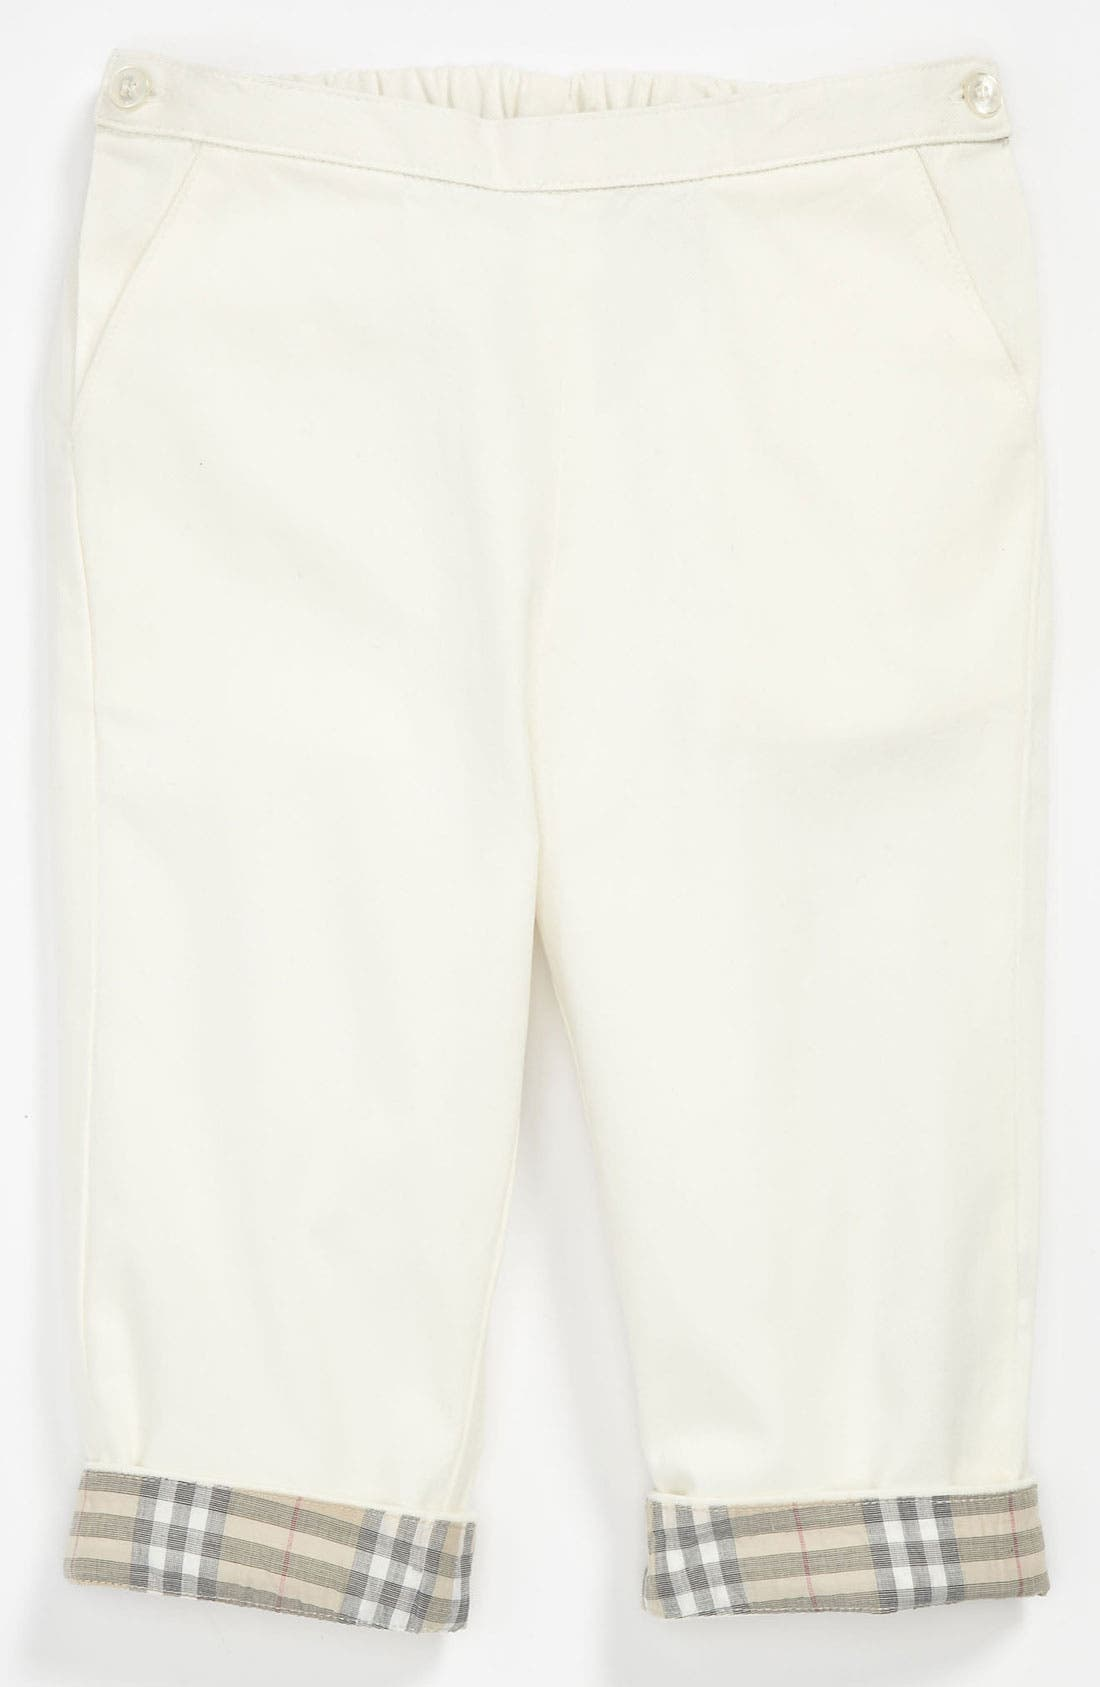 Alternate Image 1 Selected - Burberry 'Paddy' Trousers (Baby)